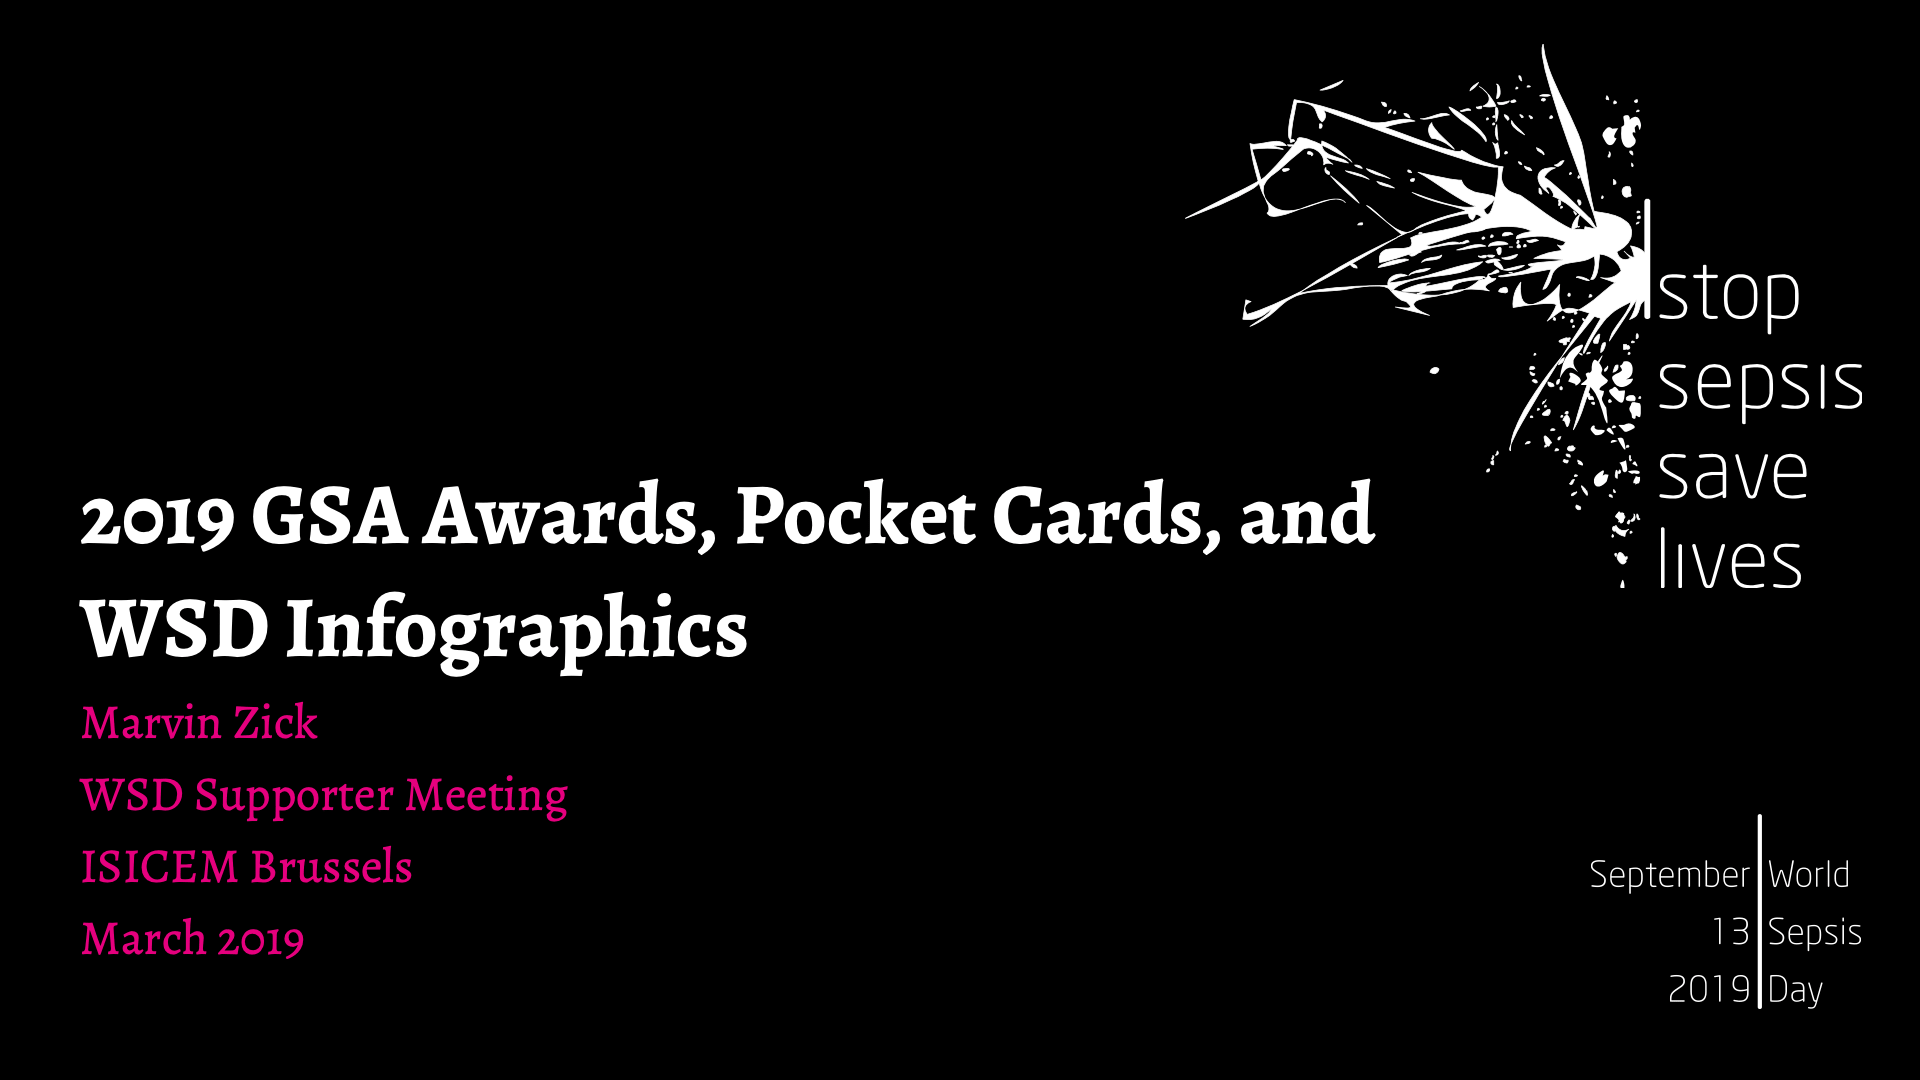 2019 GSA Awards, Pocket Cards, Infographics 1.png